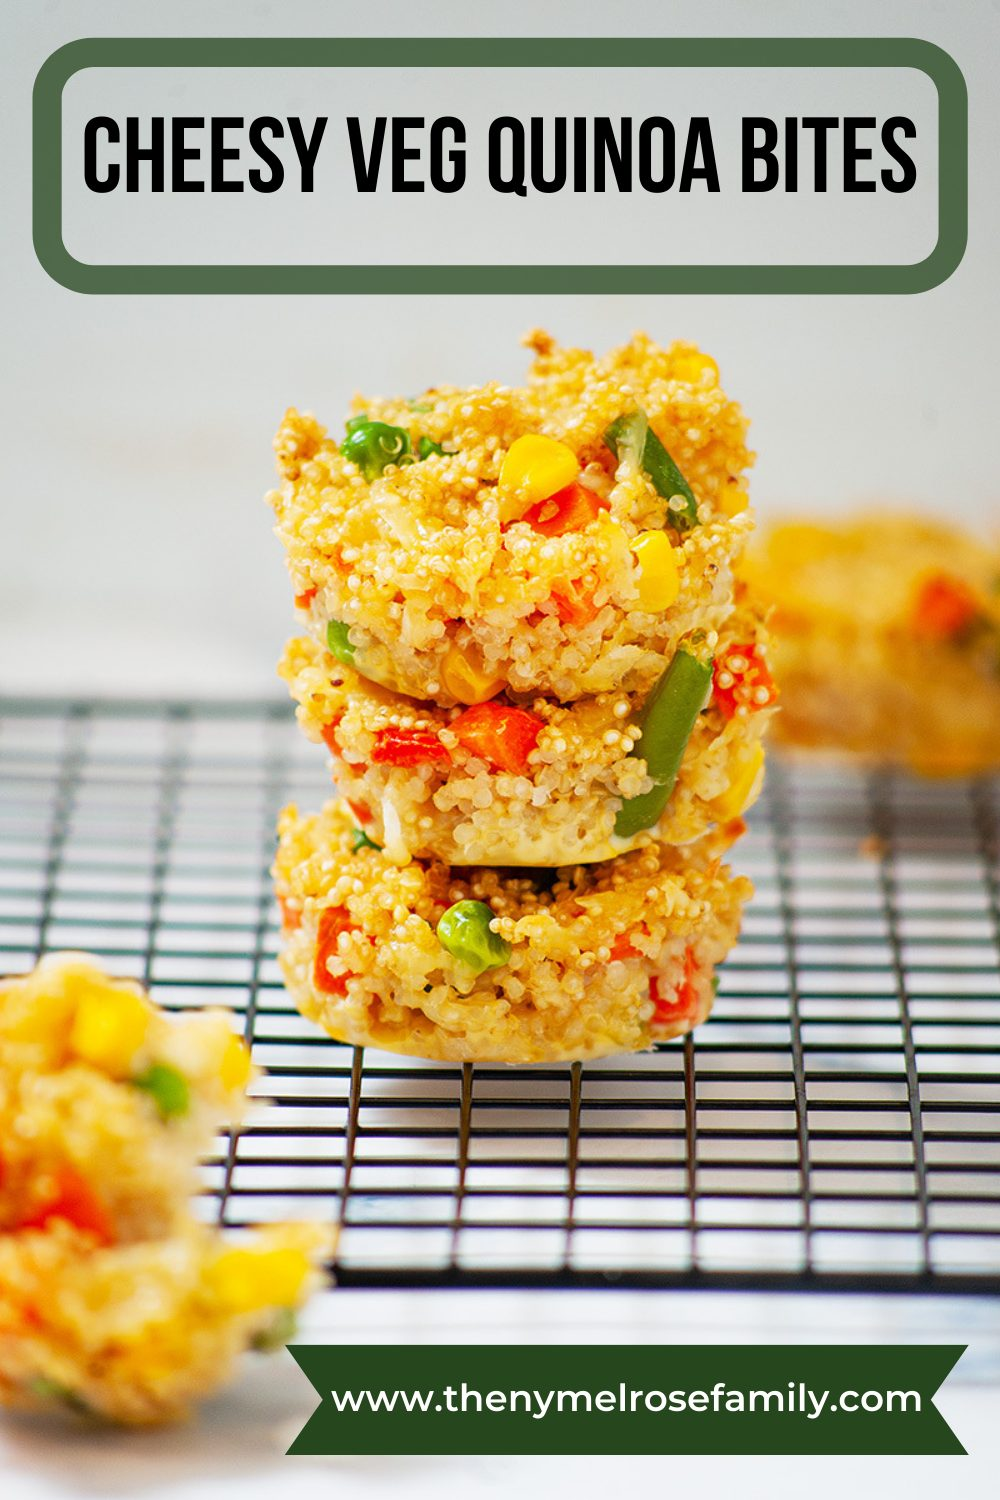 These cheesy veg Quinoa bites make for a healthy yet tasty snack. So go ahead and enjoy guilt free snacking. #healthy #veg #healthyrecipes #quinoa #nymelrosefamily via @jennymelrose